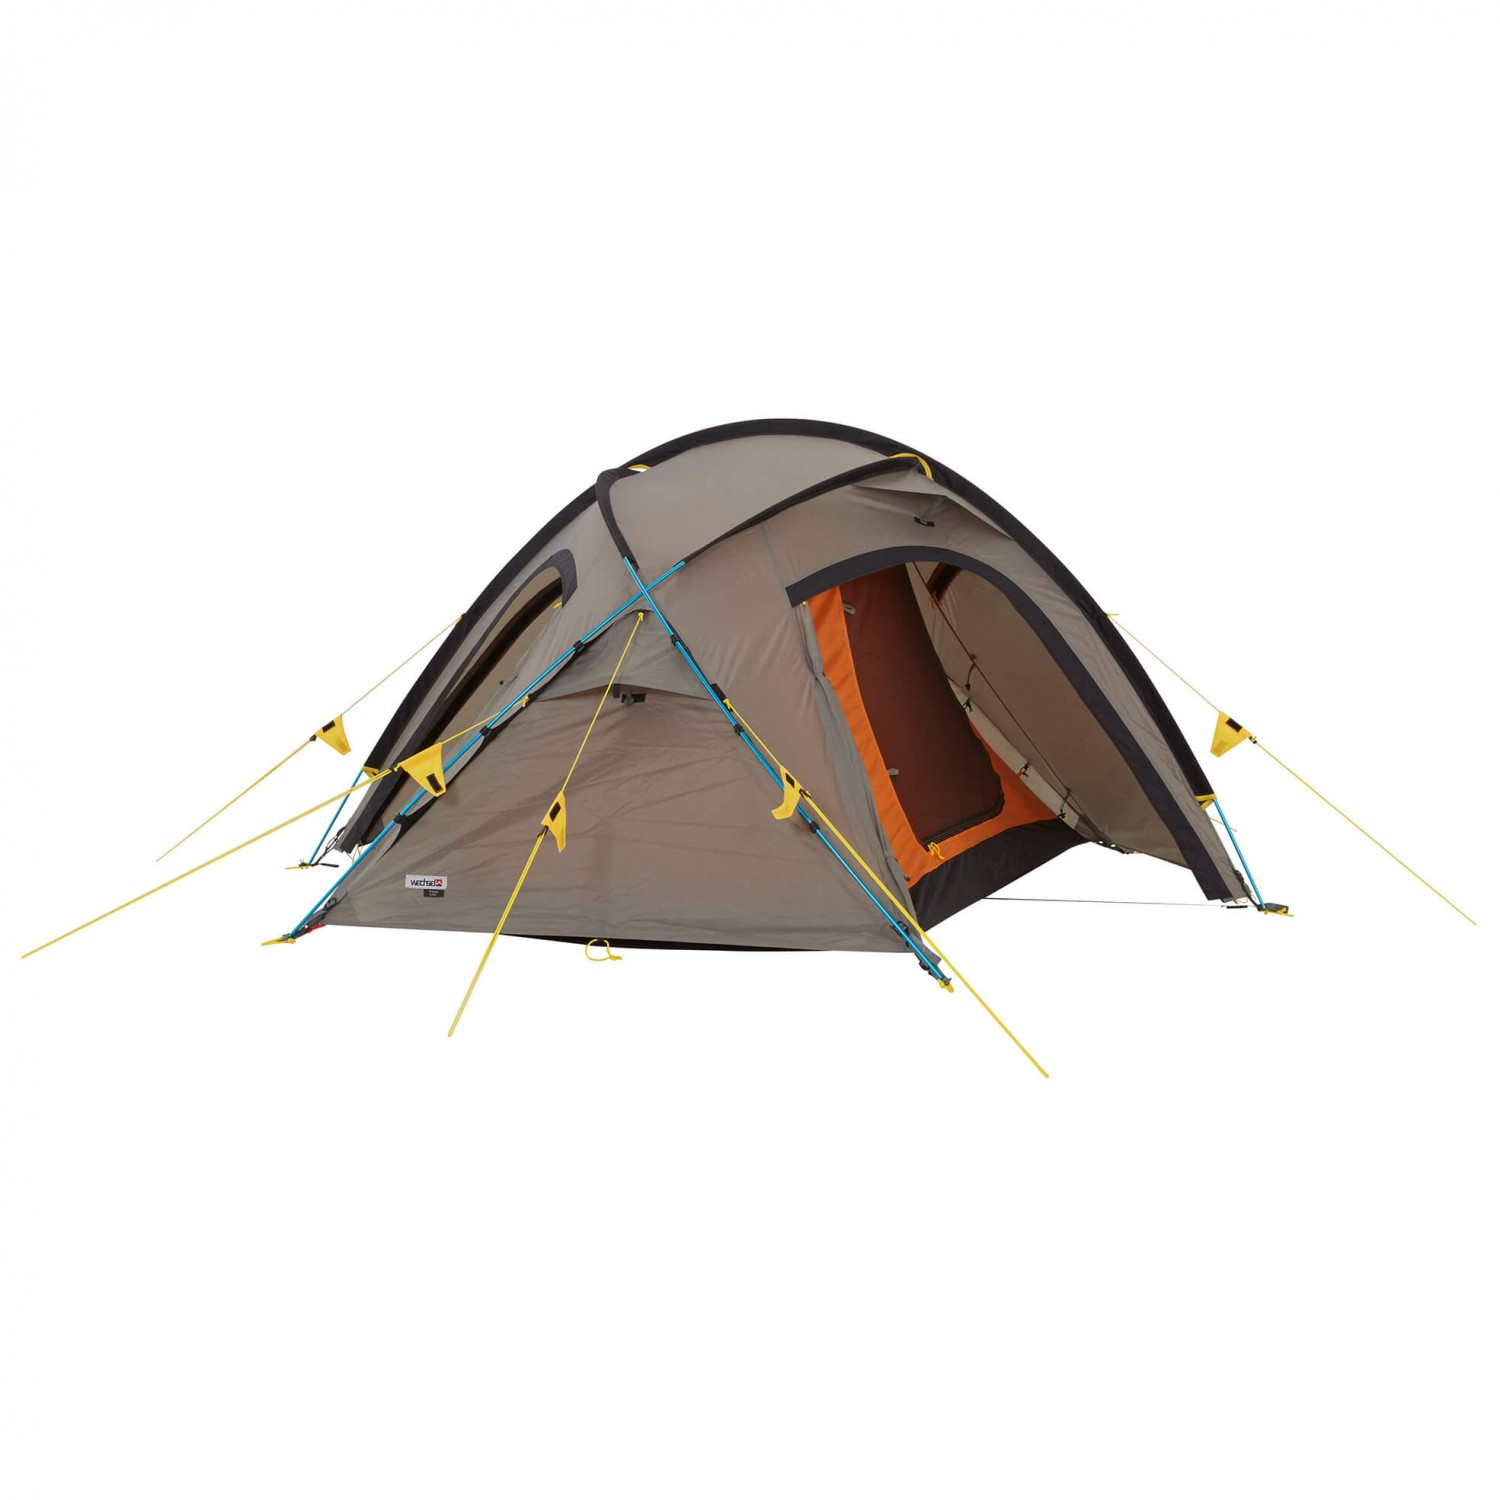 """Wechsel Forum 4 2 """"""""Travel Line"""""""" - 2-Person Tent 